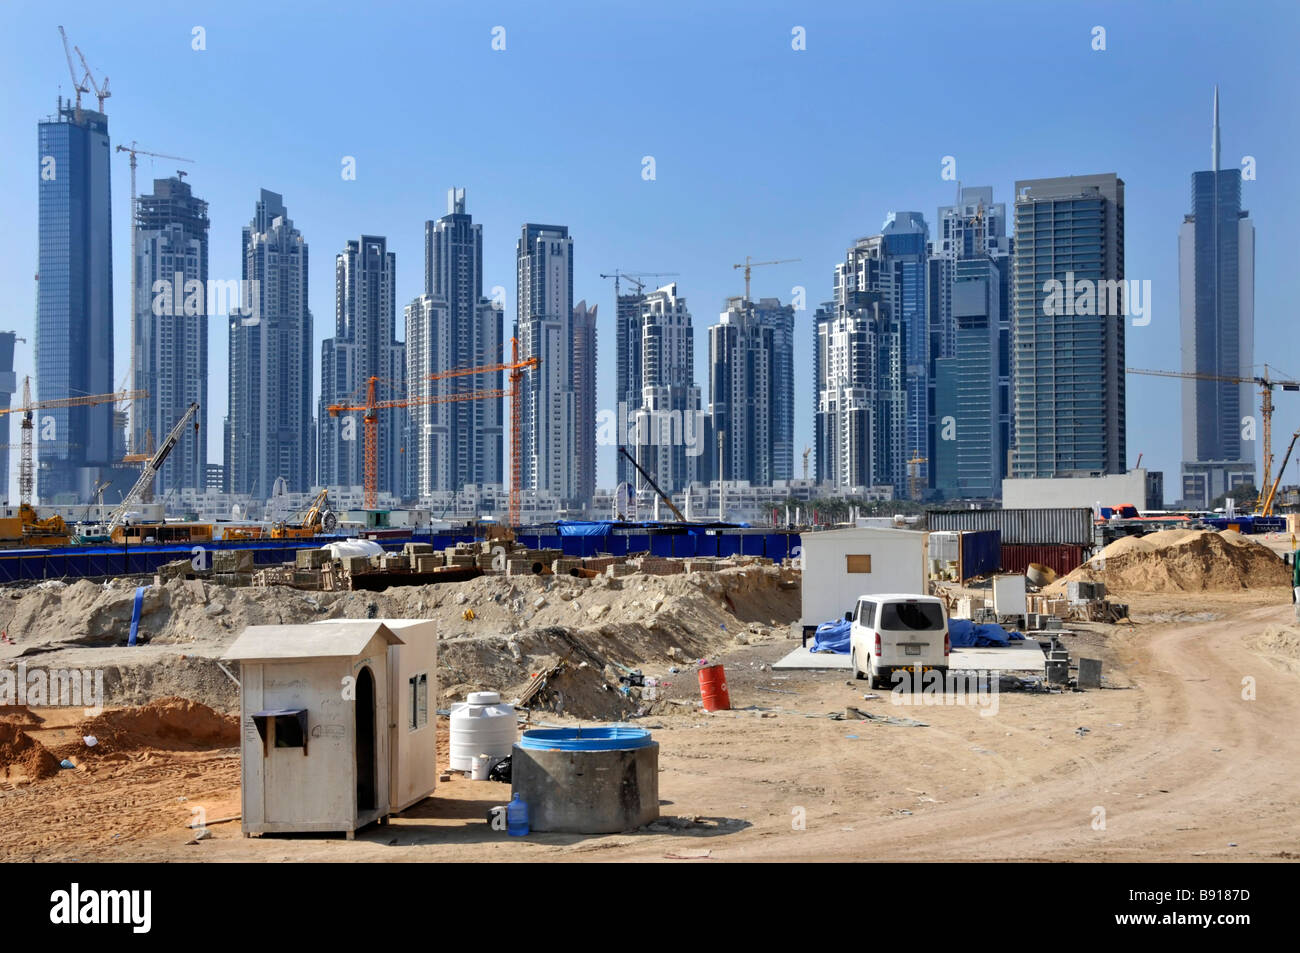 Dubai building site with high rise skyscrapers under construction - Stock Image